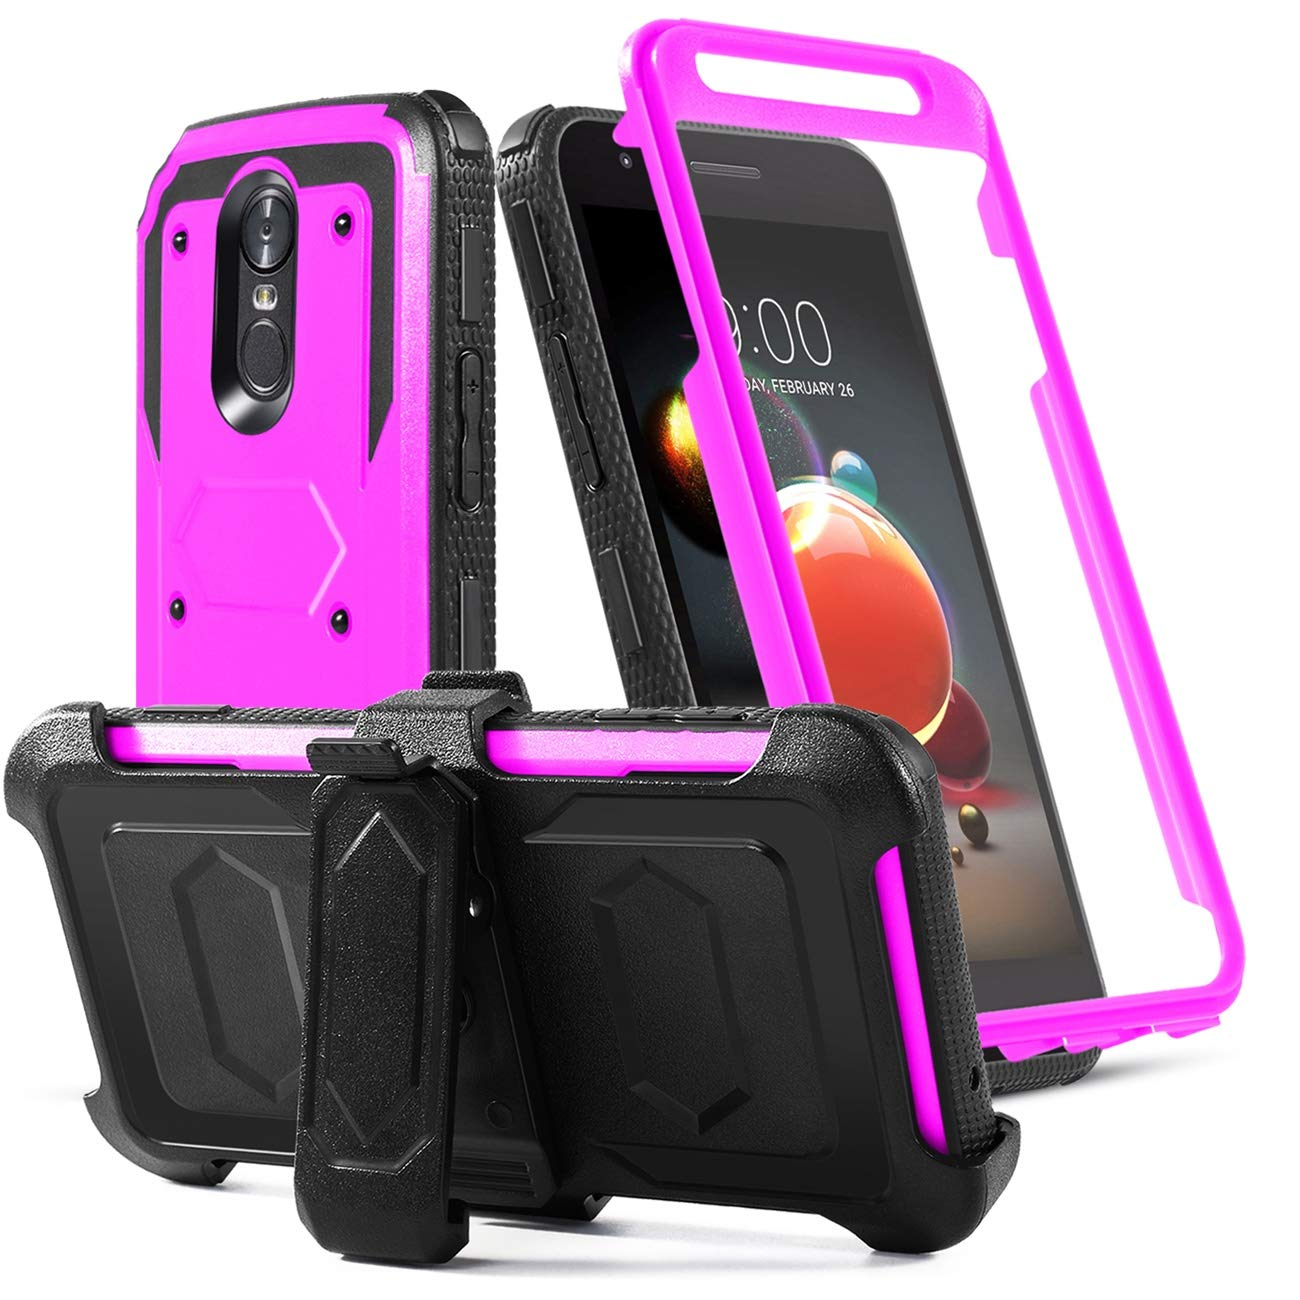 LG Aristo 2 Case/LG Rebel 4 lte/Tribute Dynasty/Tribute Empire/Zone 4/K8+/K8S/Fortune 2/Risio 3/Phonenix 4/Phone Case Built-in[Screen Protector]w/Belt Clip[Kickstand]Heavy Duty Full Body Case,Purple